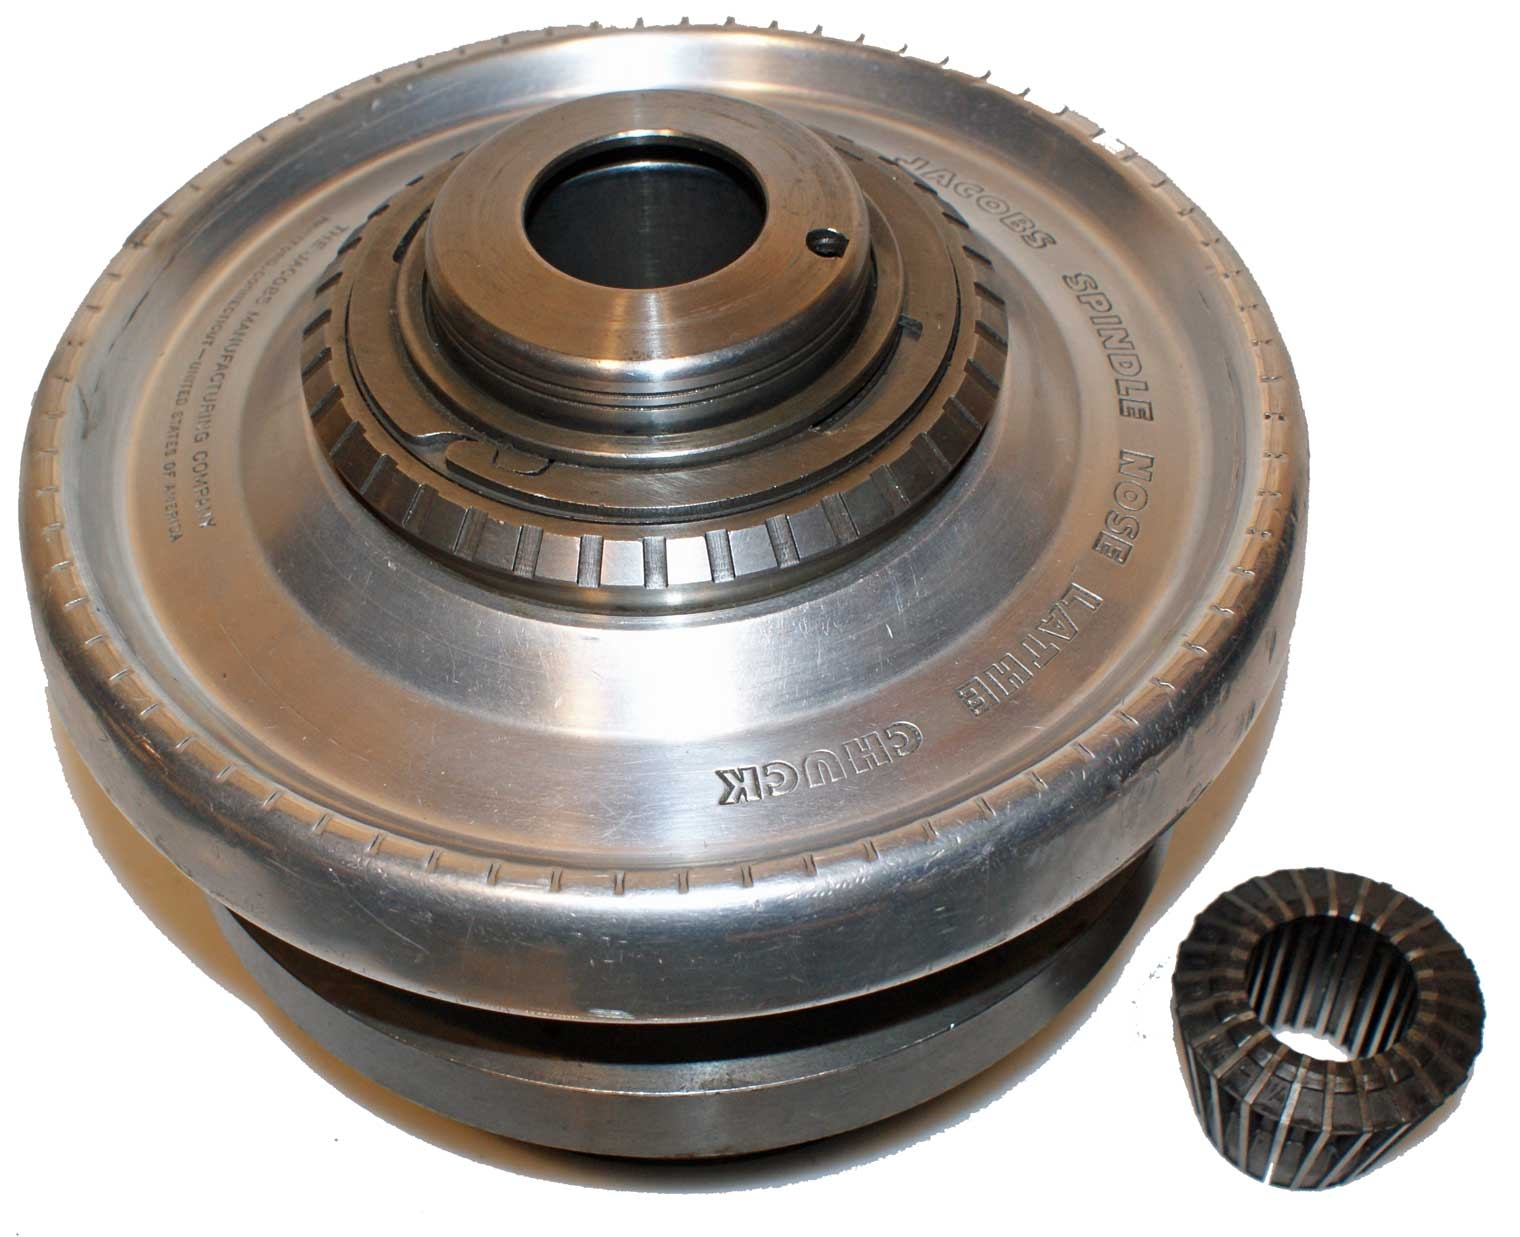 Jacobs 91-A6 to L1 Spindle Nose Chuck